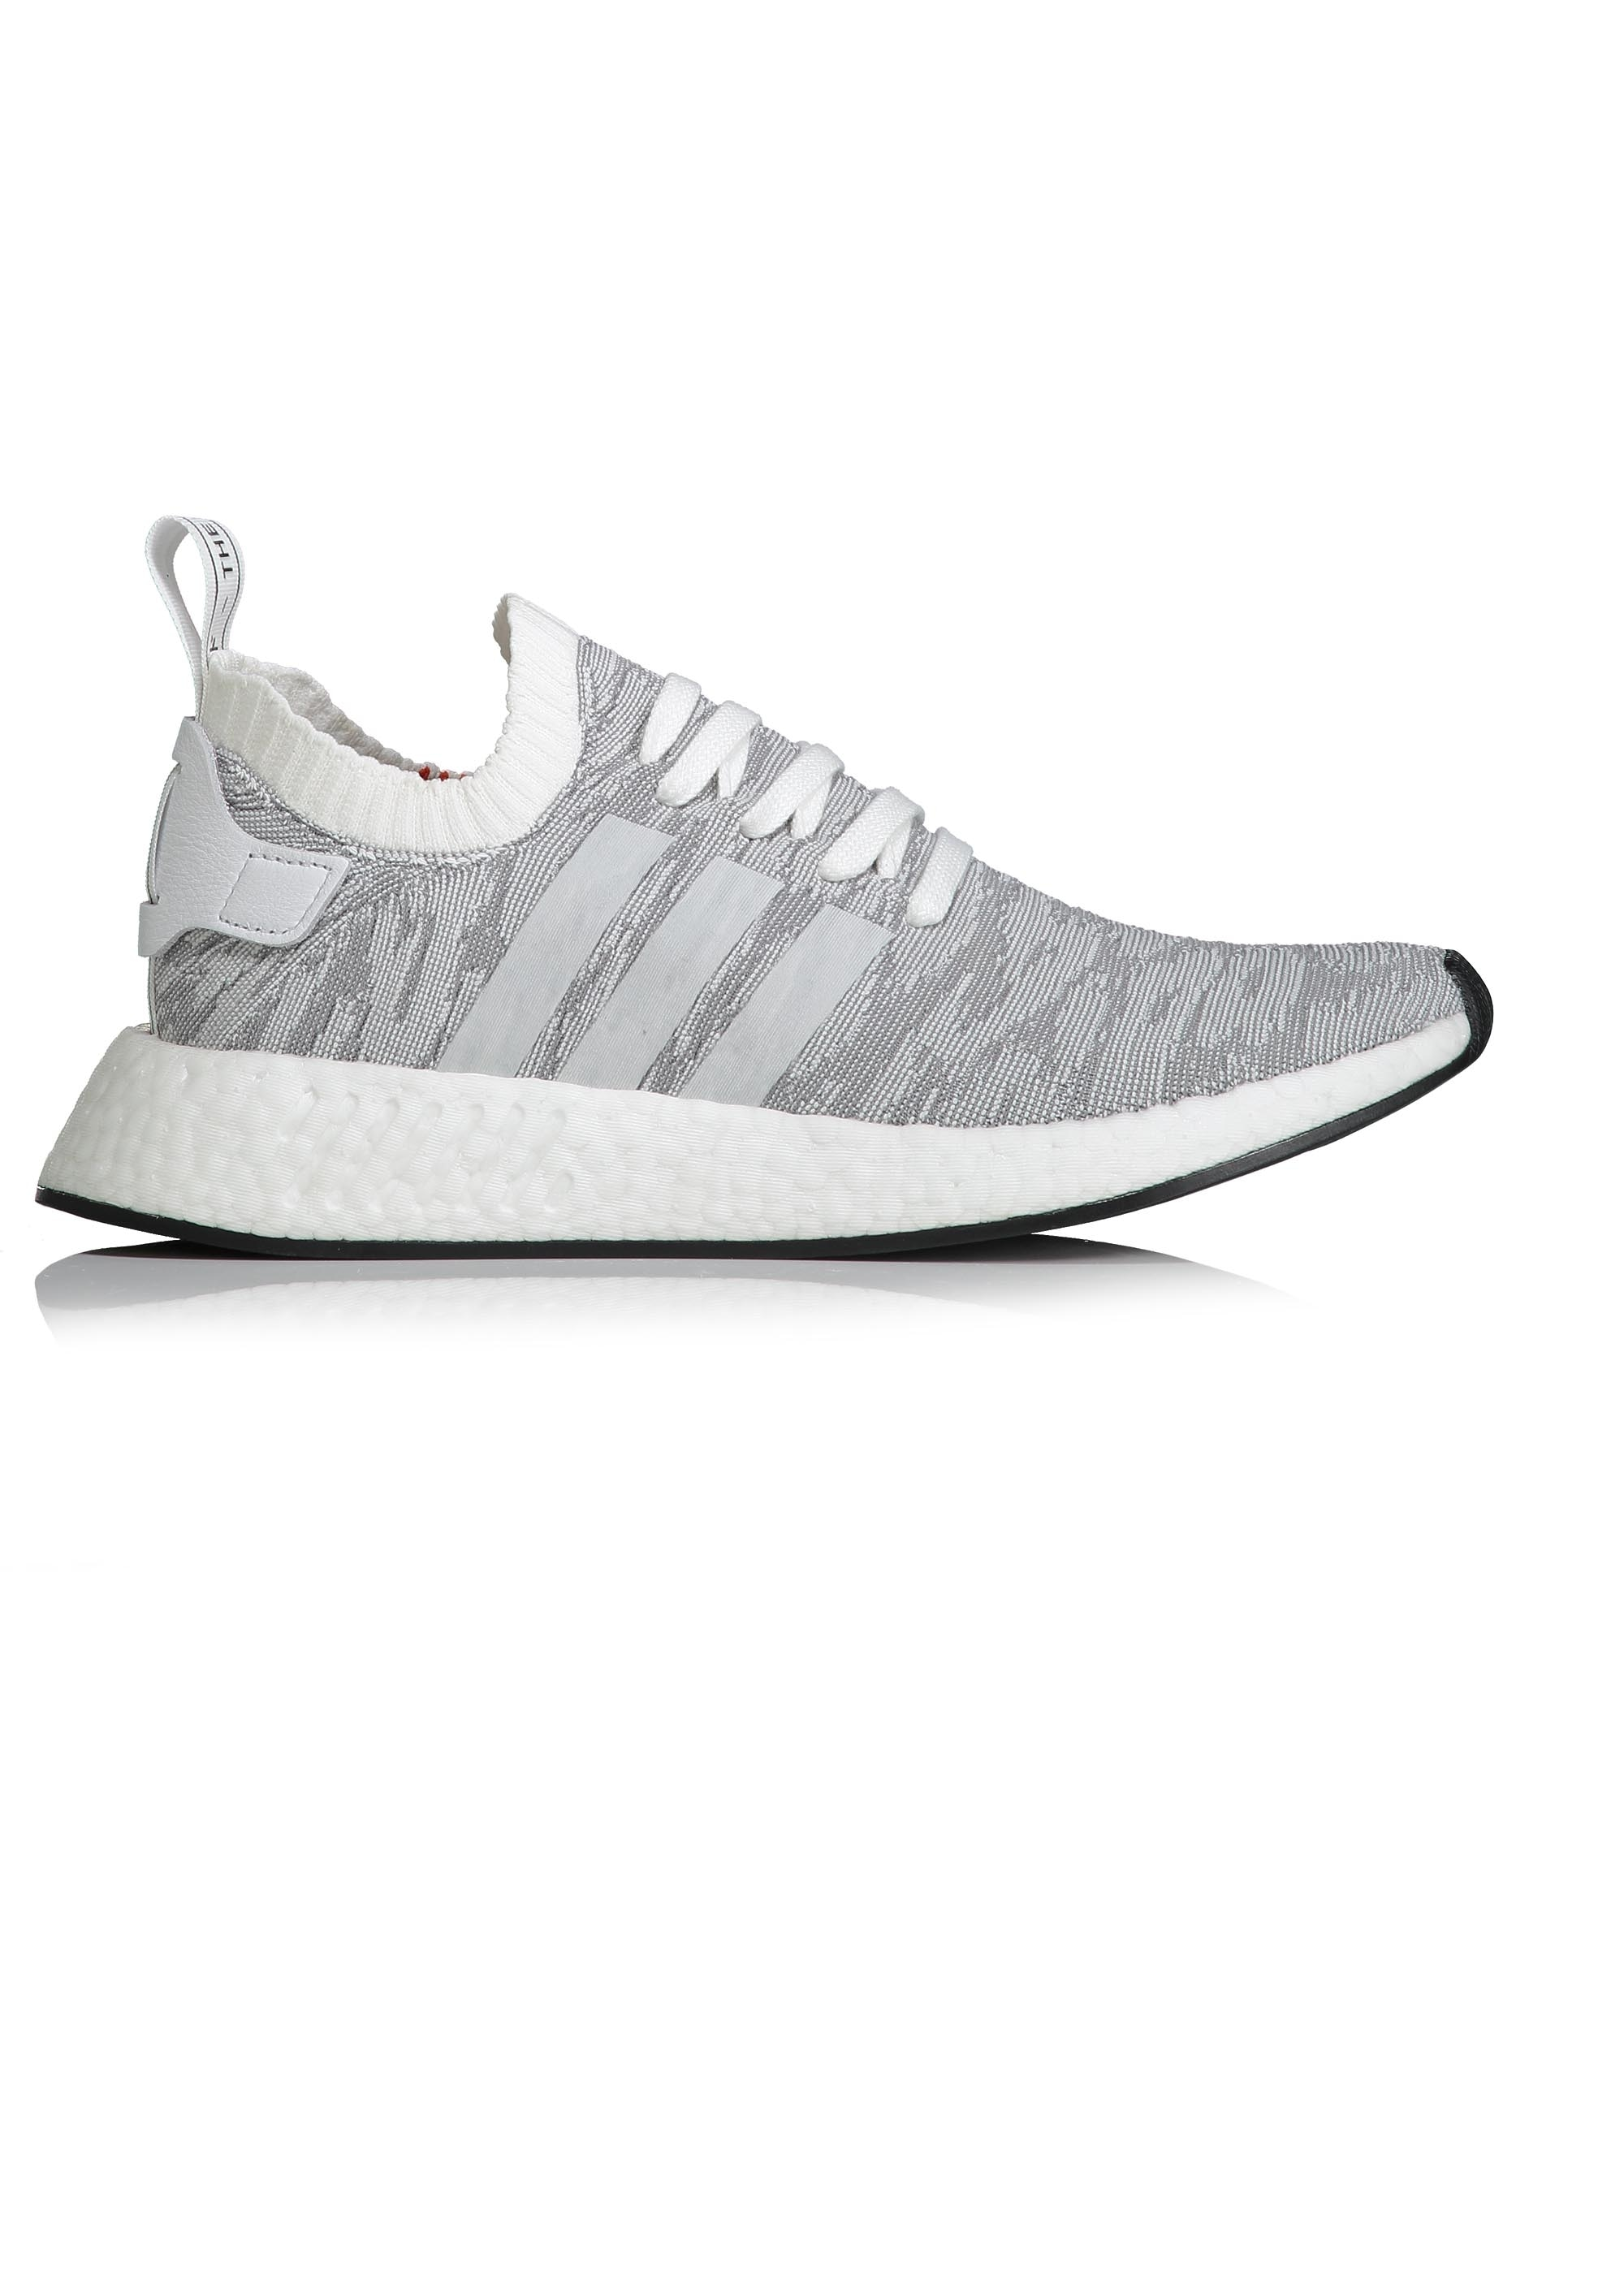 aac1e3f86685 adidas Originals Footwear NMD R2 PK - White   Black - Trainers from ...